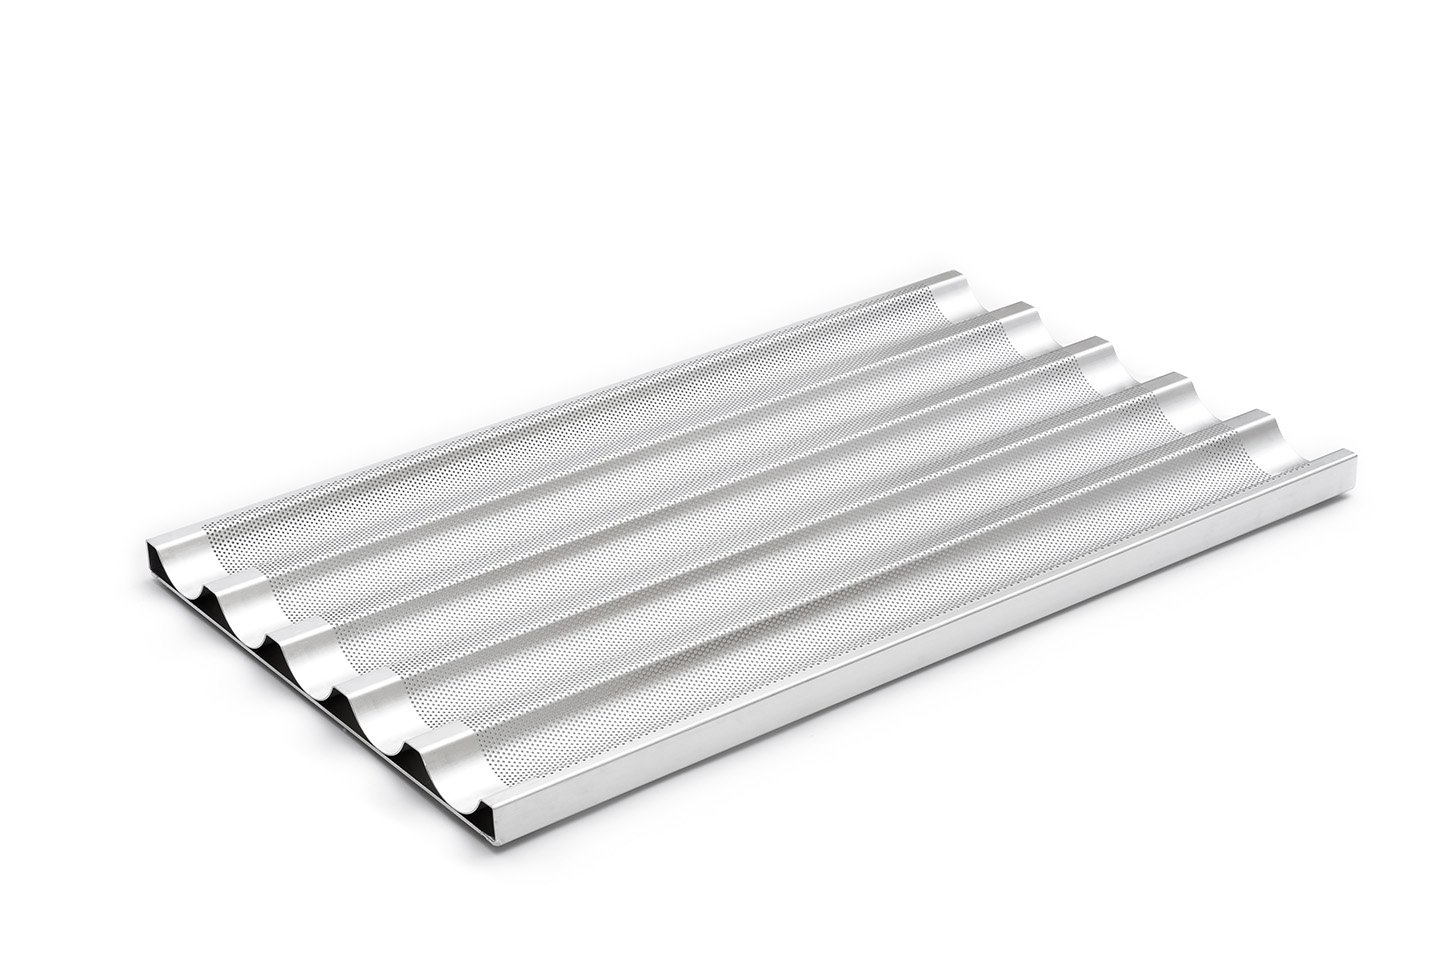 5 Channel Baguette Tray - AMERICOAT® Coating